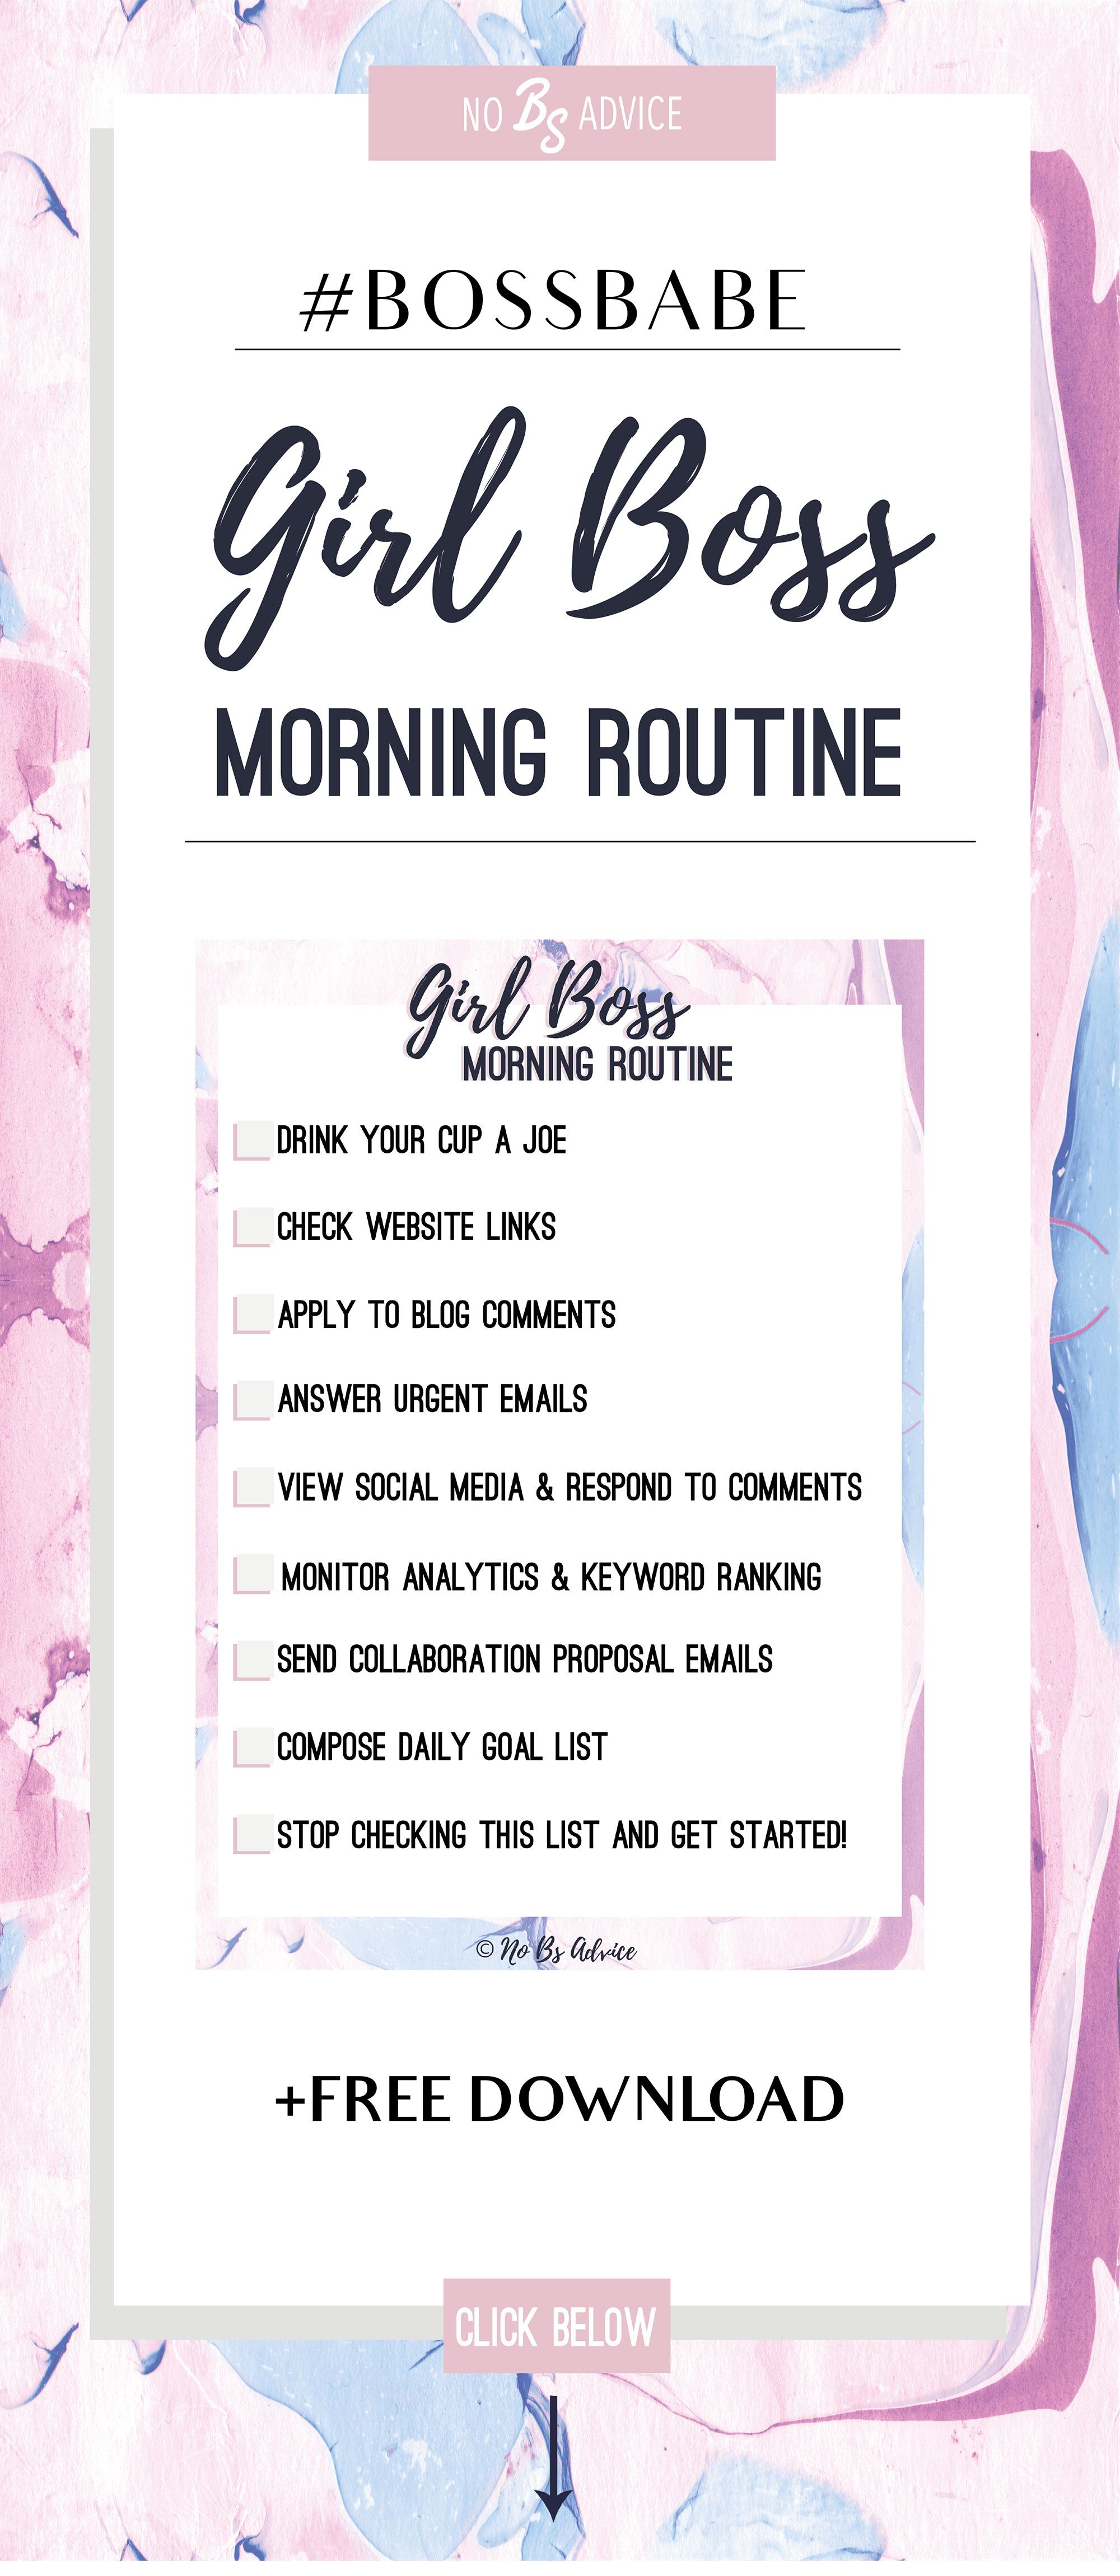 Start Off Your Morning Right With This Girl Boss Morning